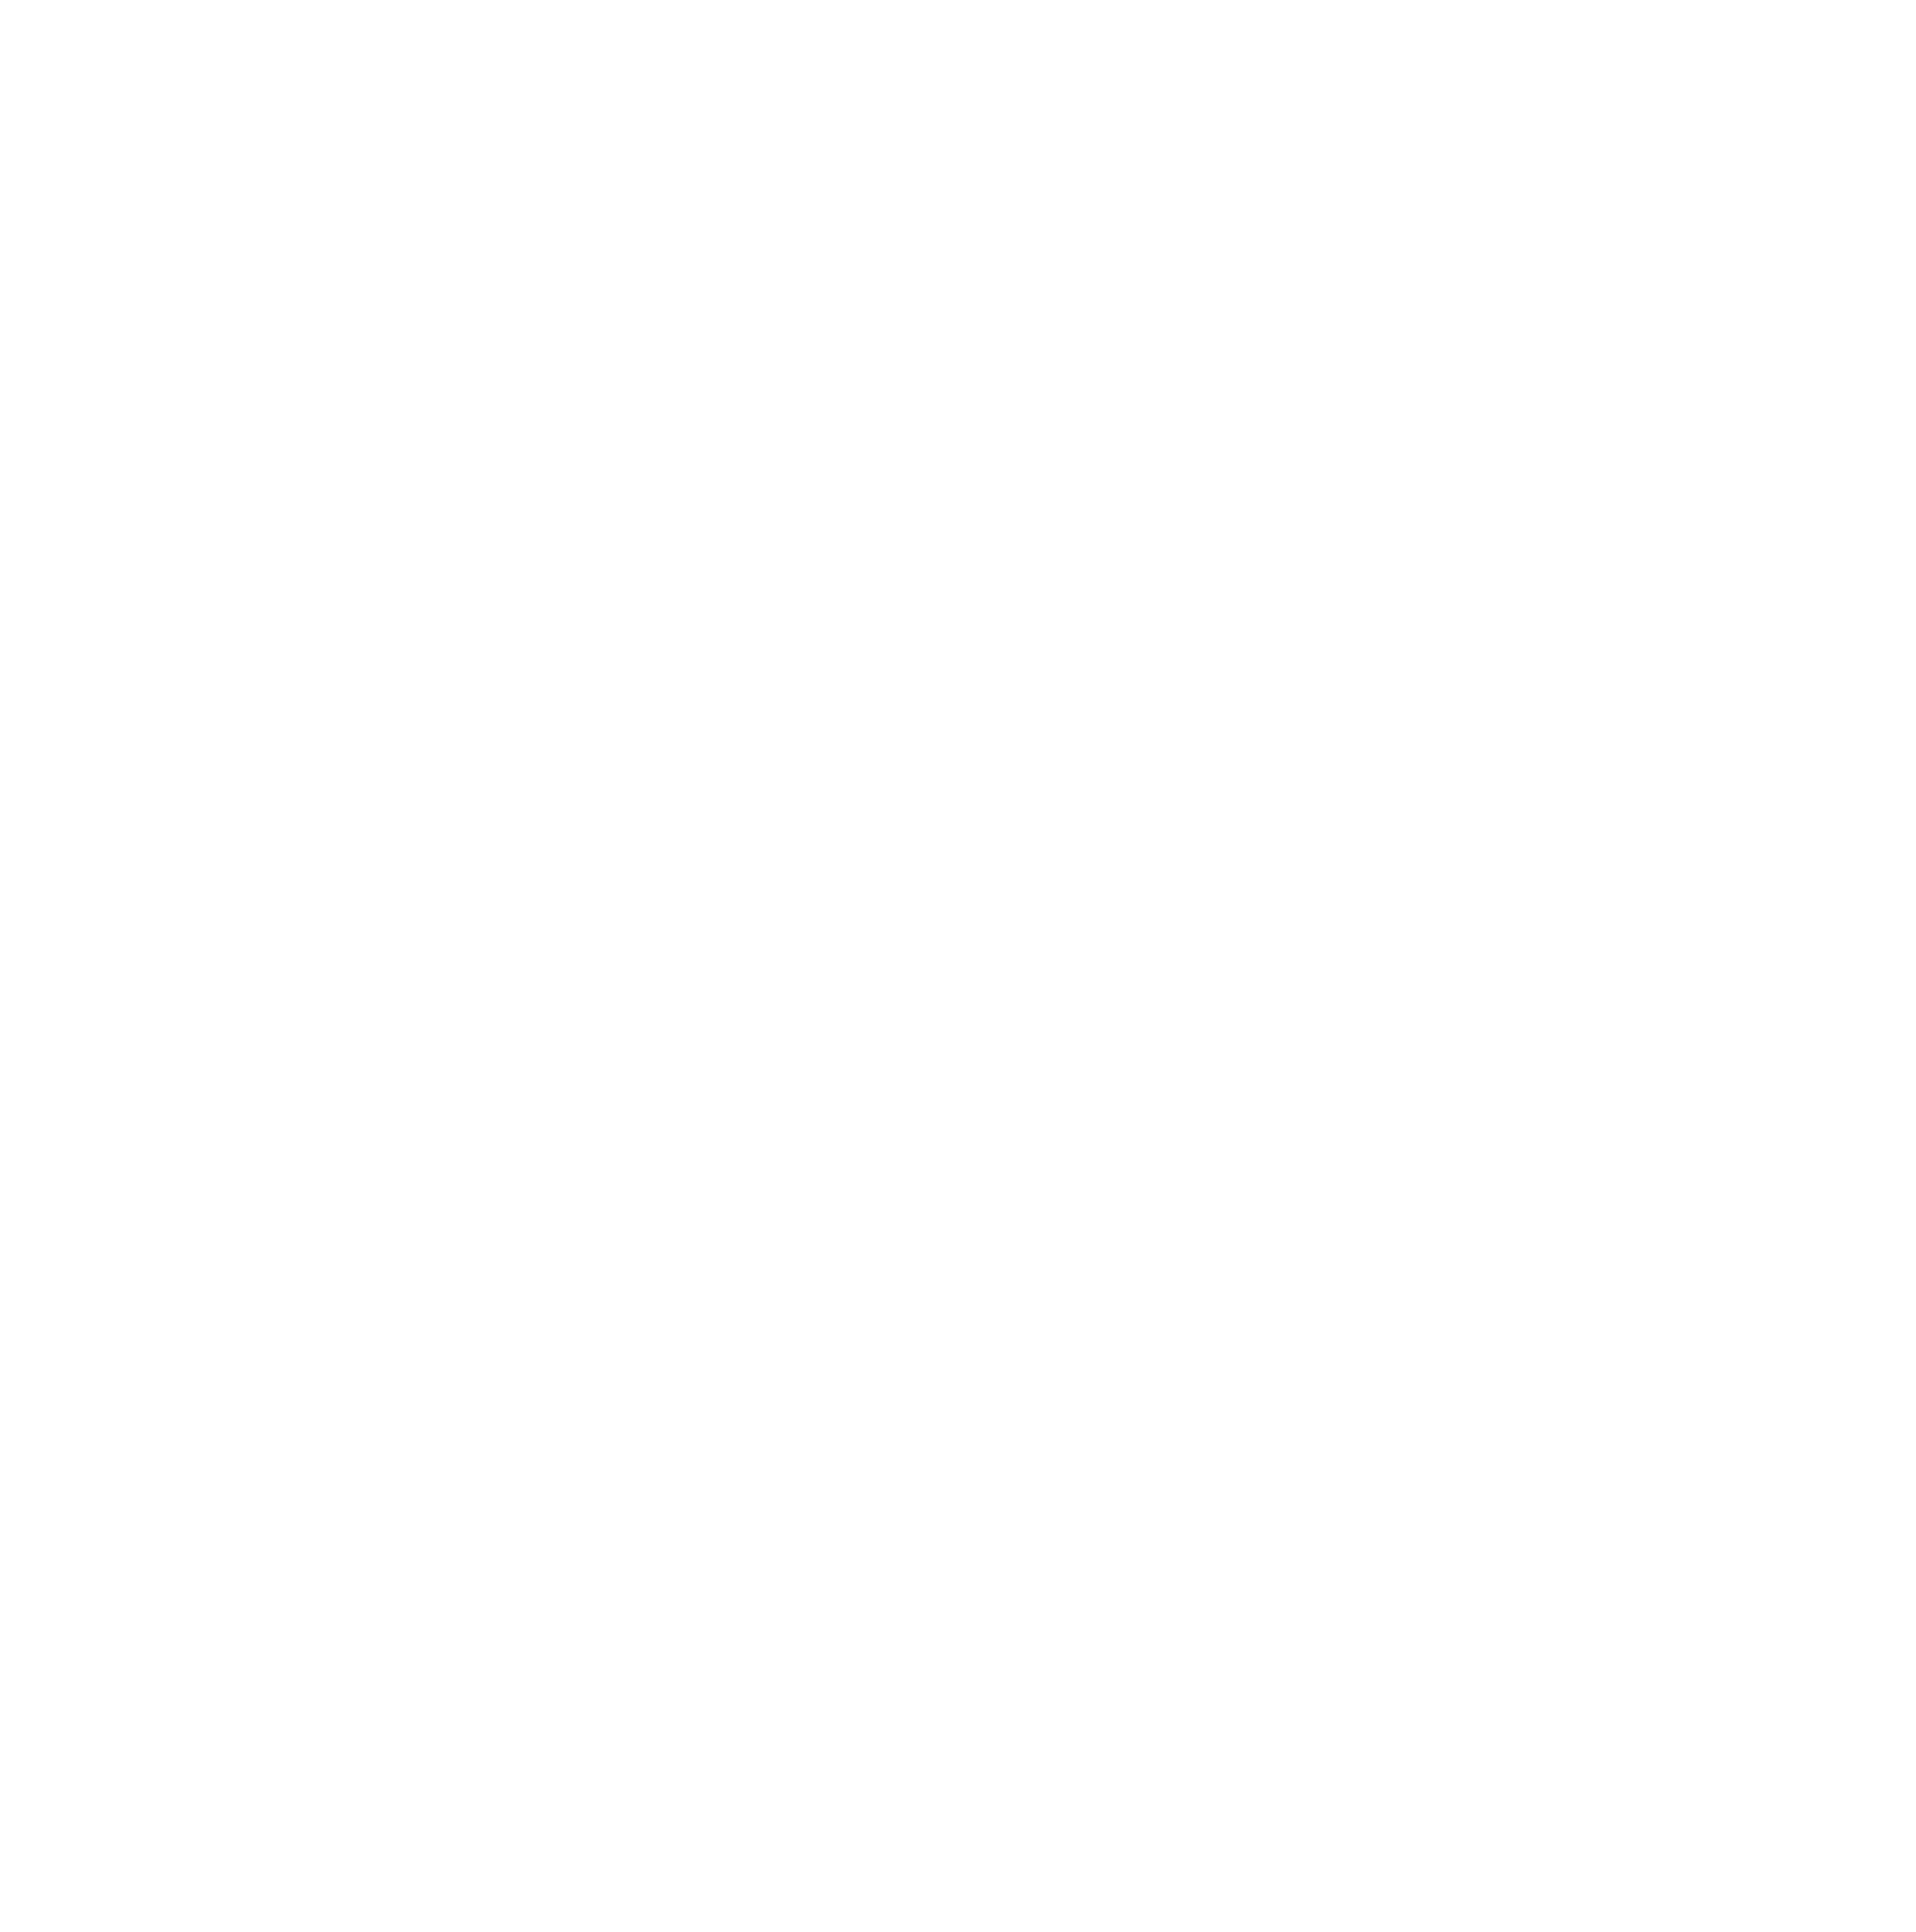 San Diego Car Shipping